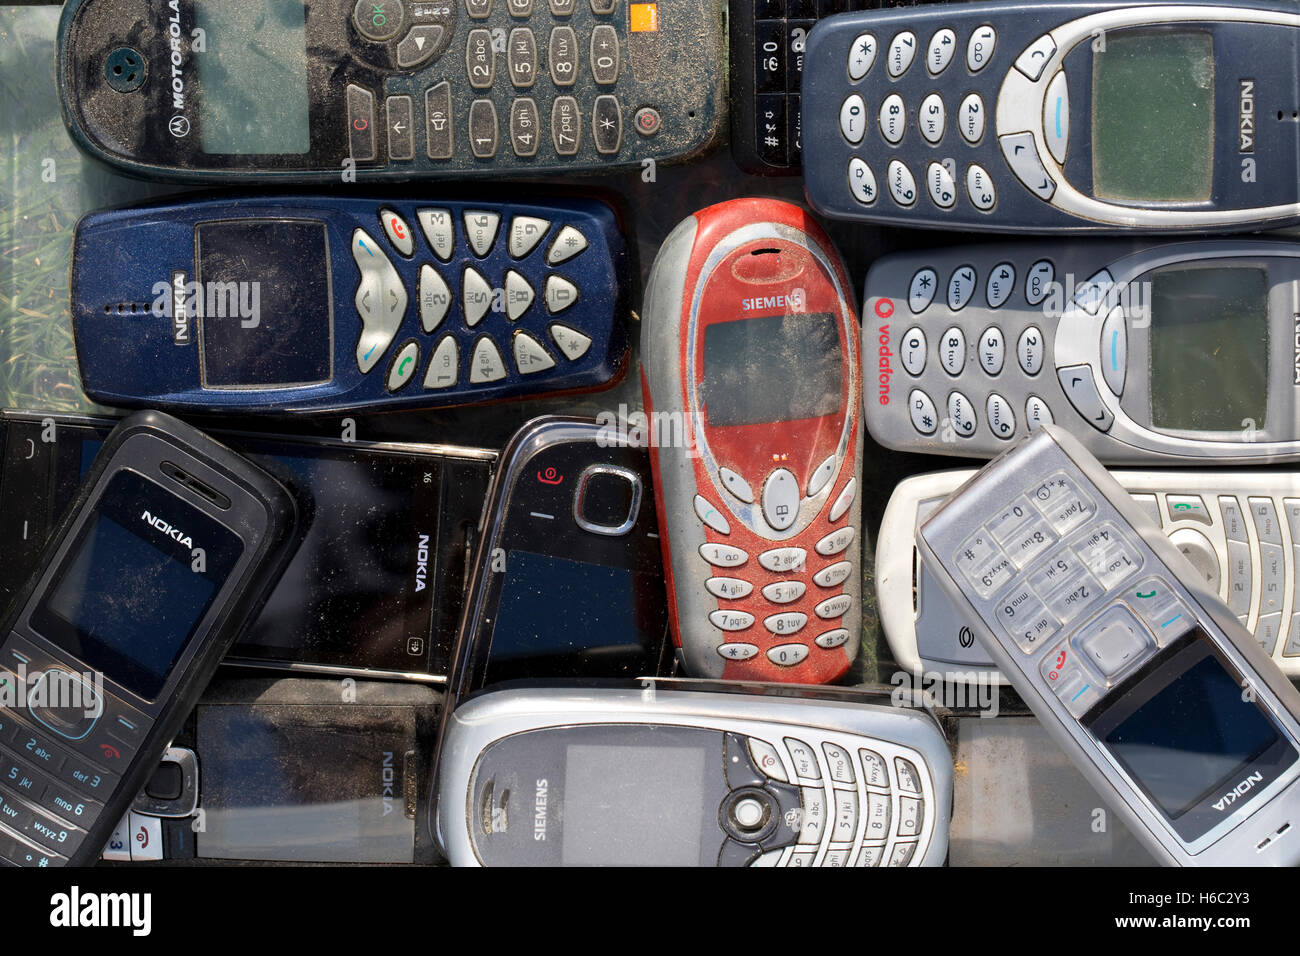 93918084a69 Old Mobile Phones Stock Photos & Old Mobile Phones Stock Images - Alamy